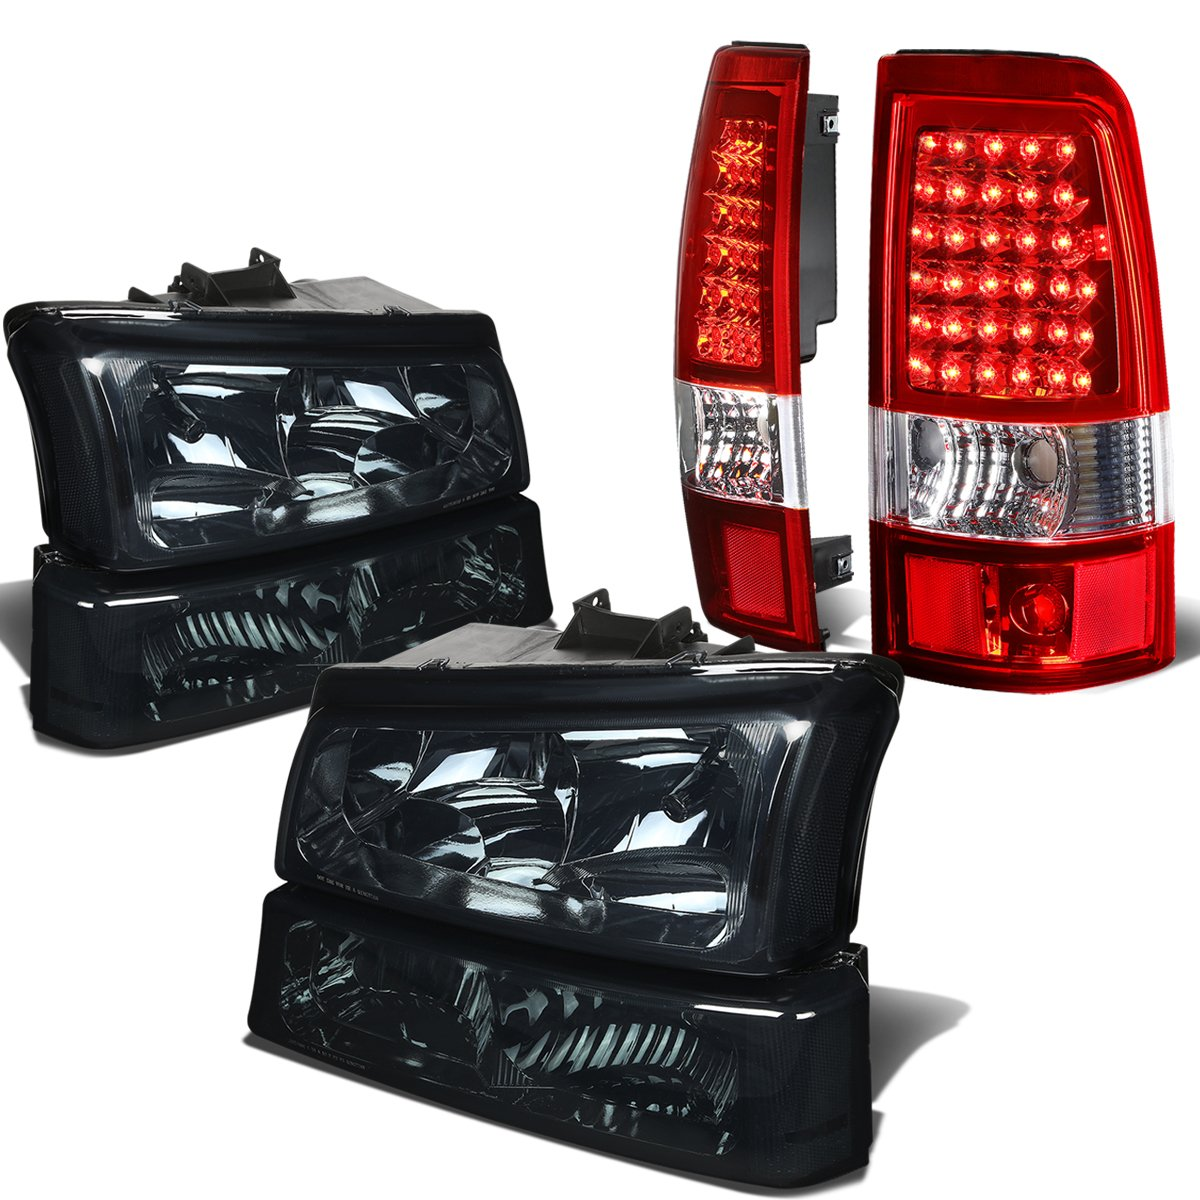 For Chevy Silverado 1st Gen 4pc Pair of Smoked Lens Clear Corner Headlight + Black Smoked Lens LED Tail Light Auto Dynasty